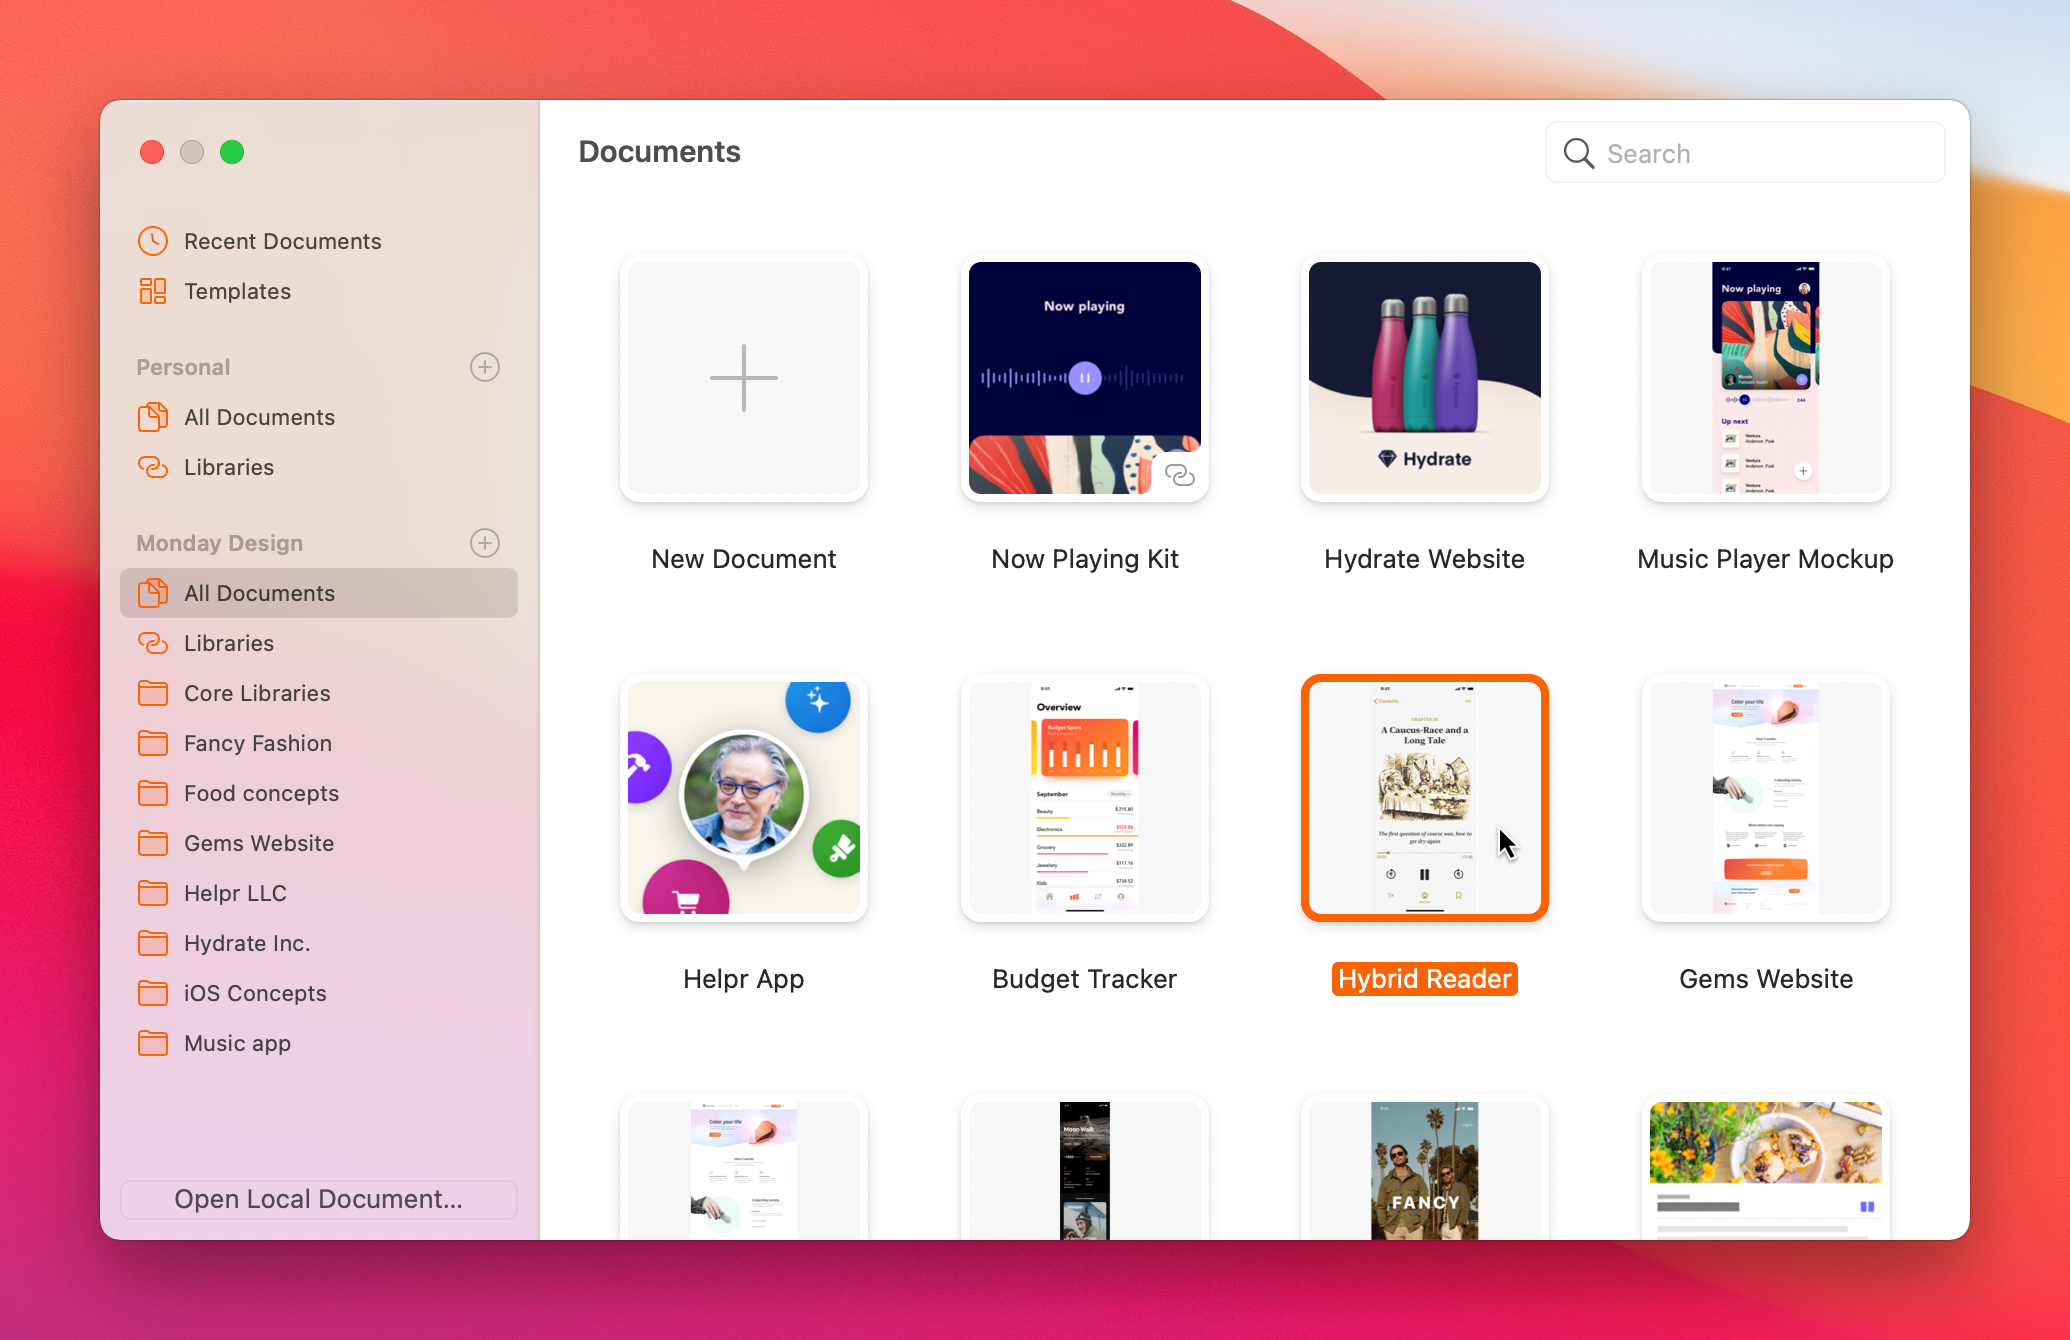 An image showing the new design for the Documents Window in Sketch 70.